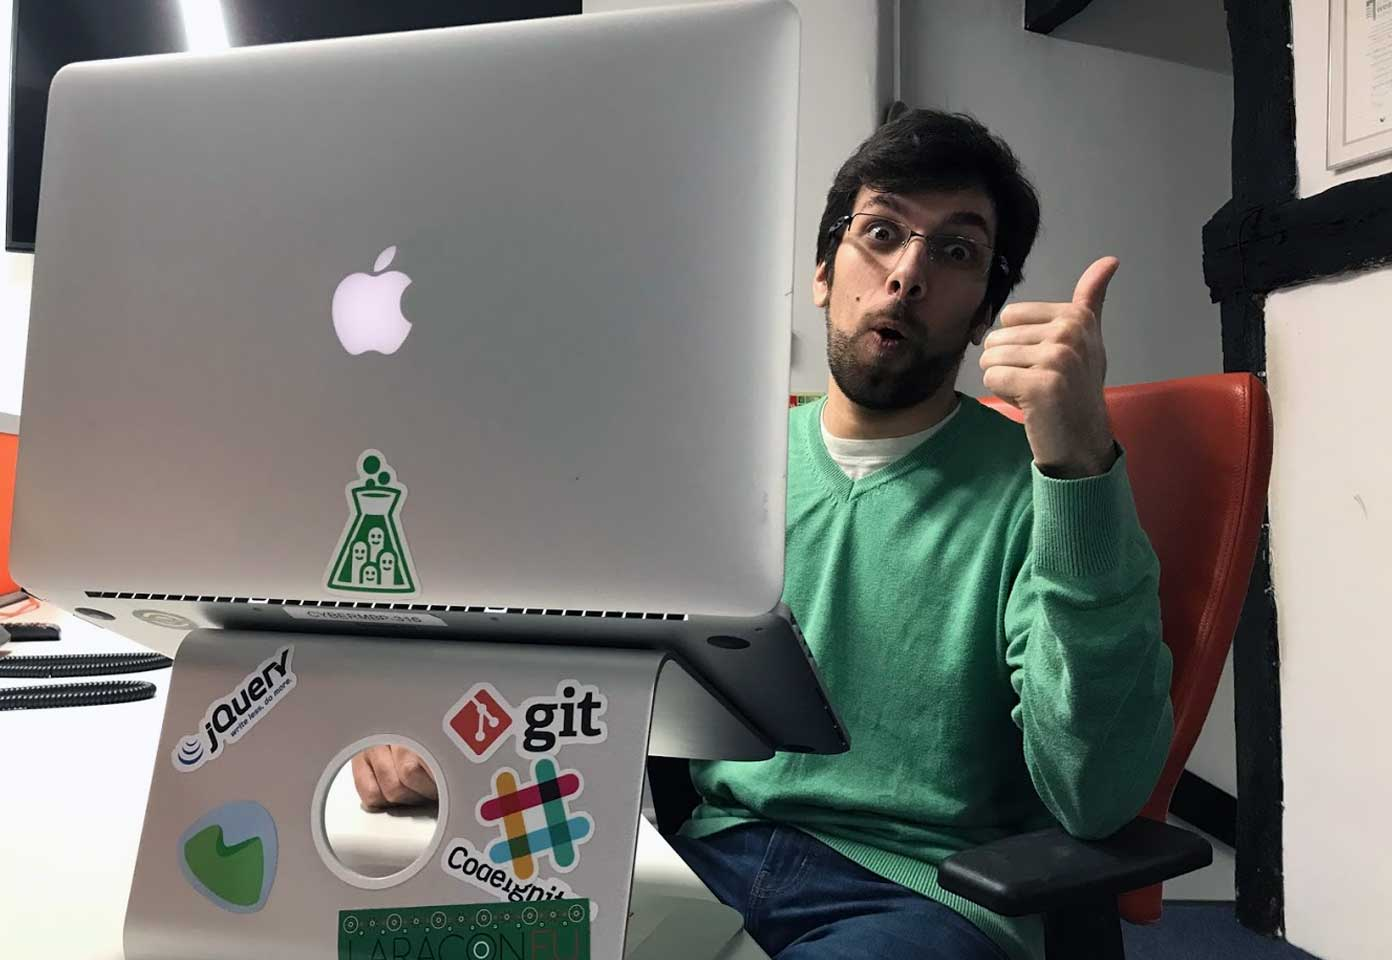 Tiago giving the thumbs-up for Cyber-Duck's Lifelong Support